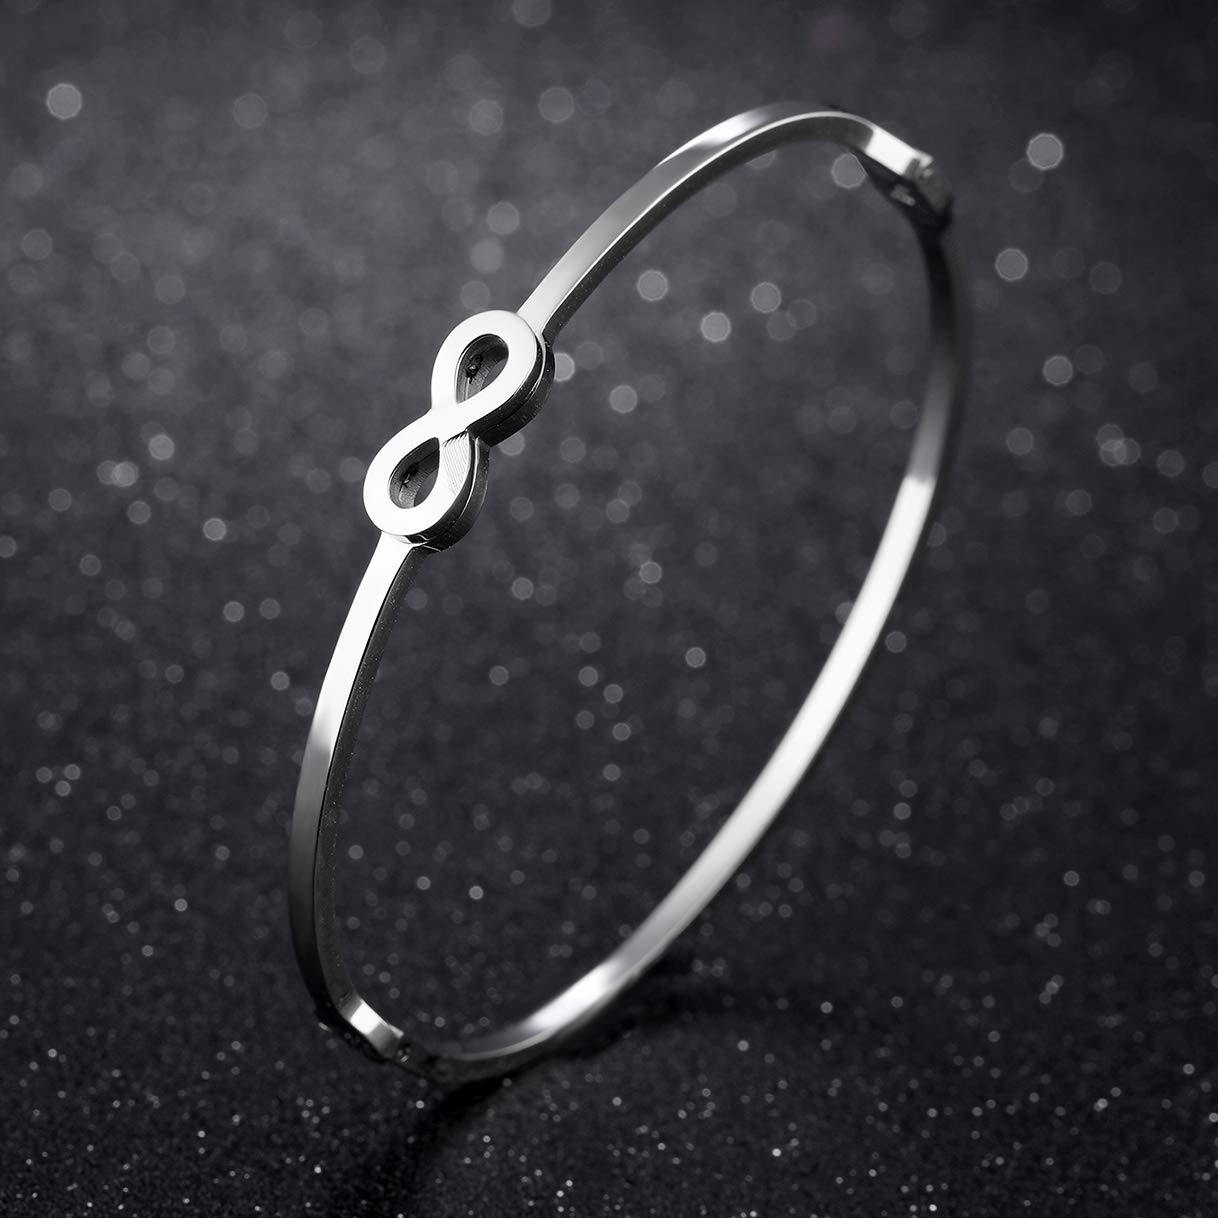 CHARMFAME Simple Stainless Steel Infinity Bangle Bracelet Fashion Jewelry for Women /& Girls